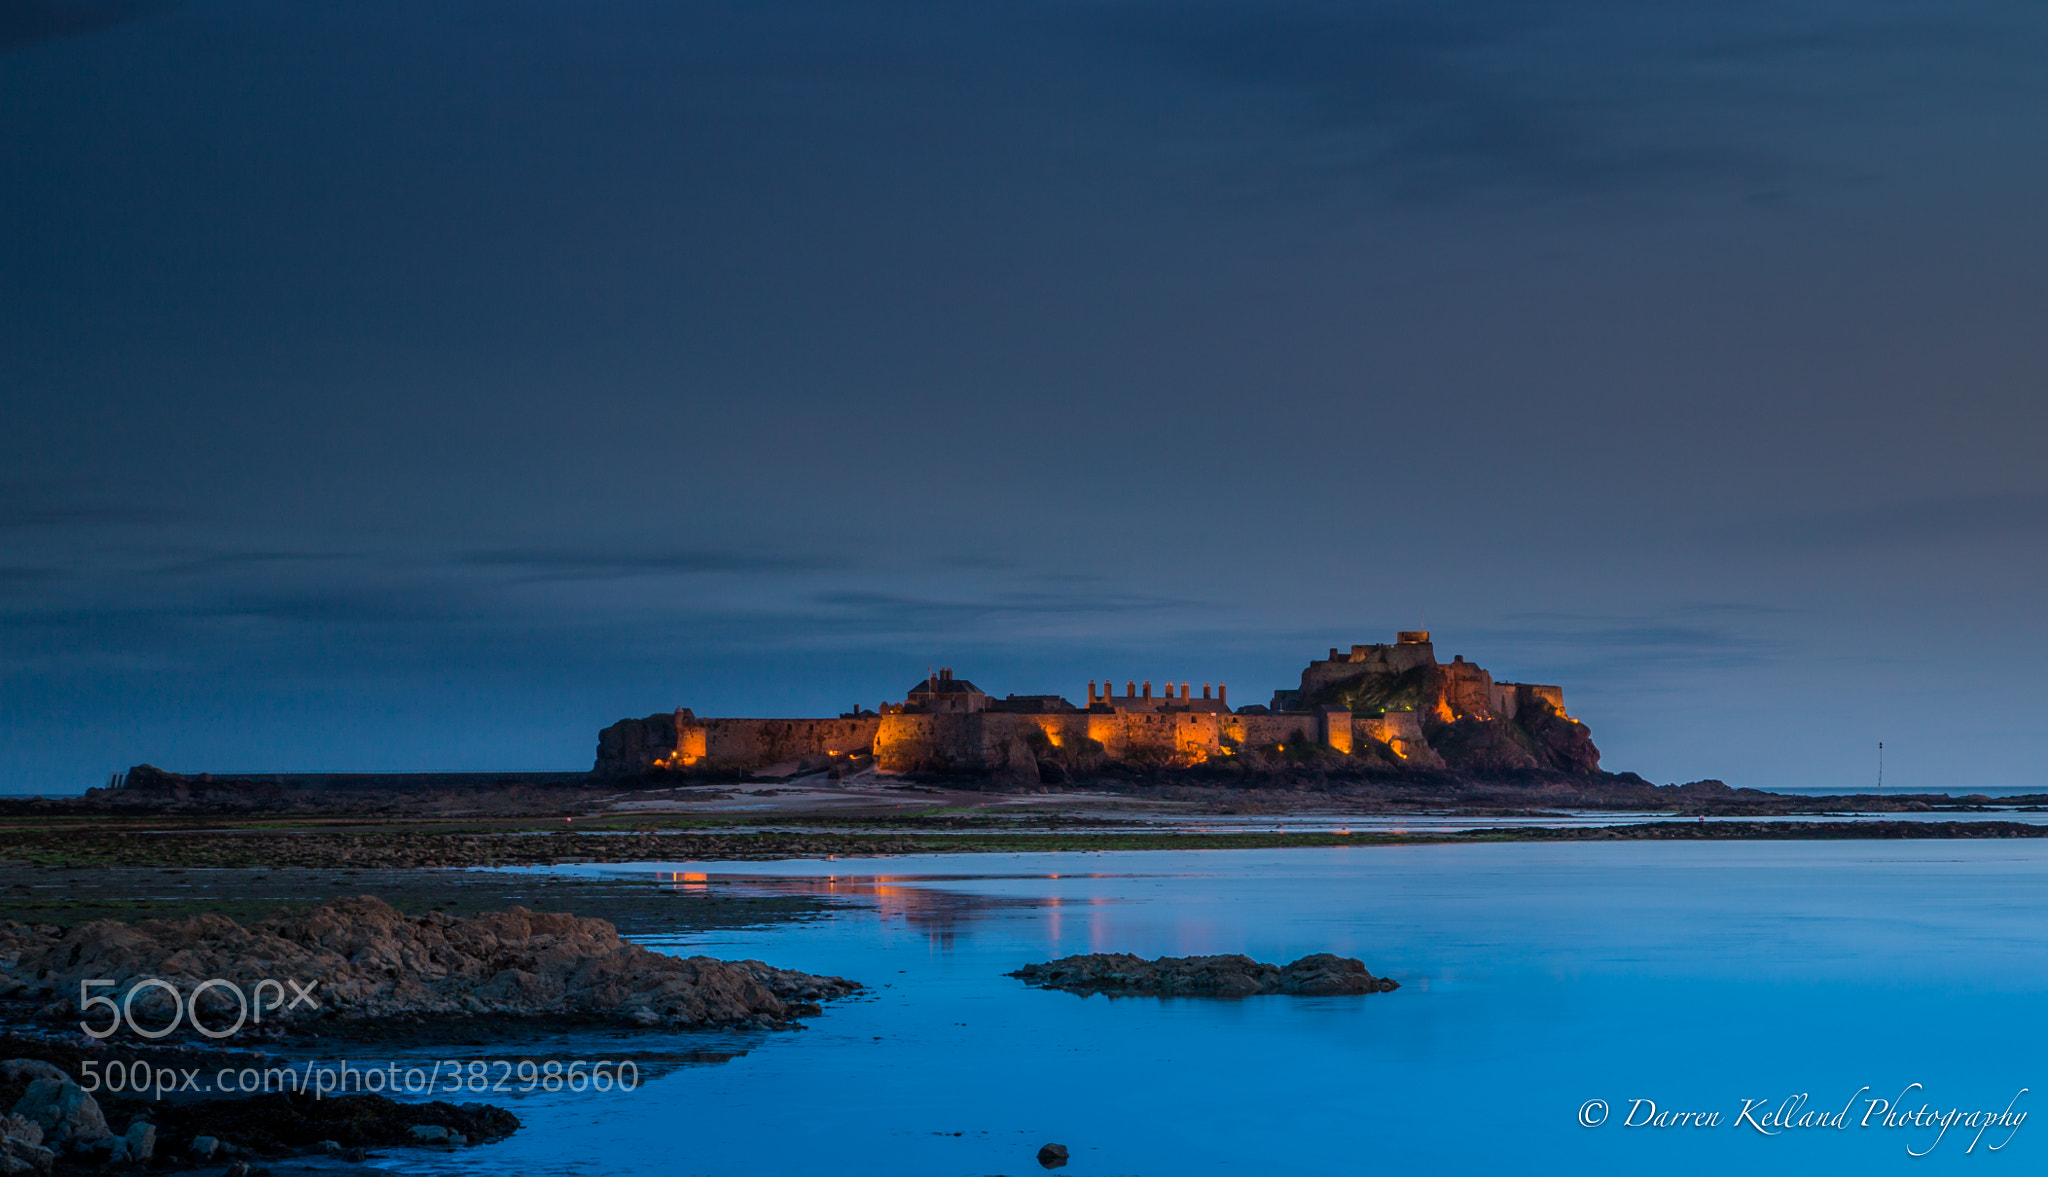 Photograph Dusk at Elizabeth Castle by Darren Kelland on 500px